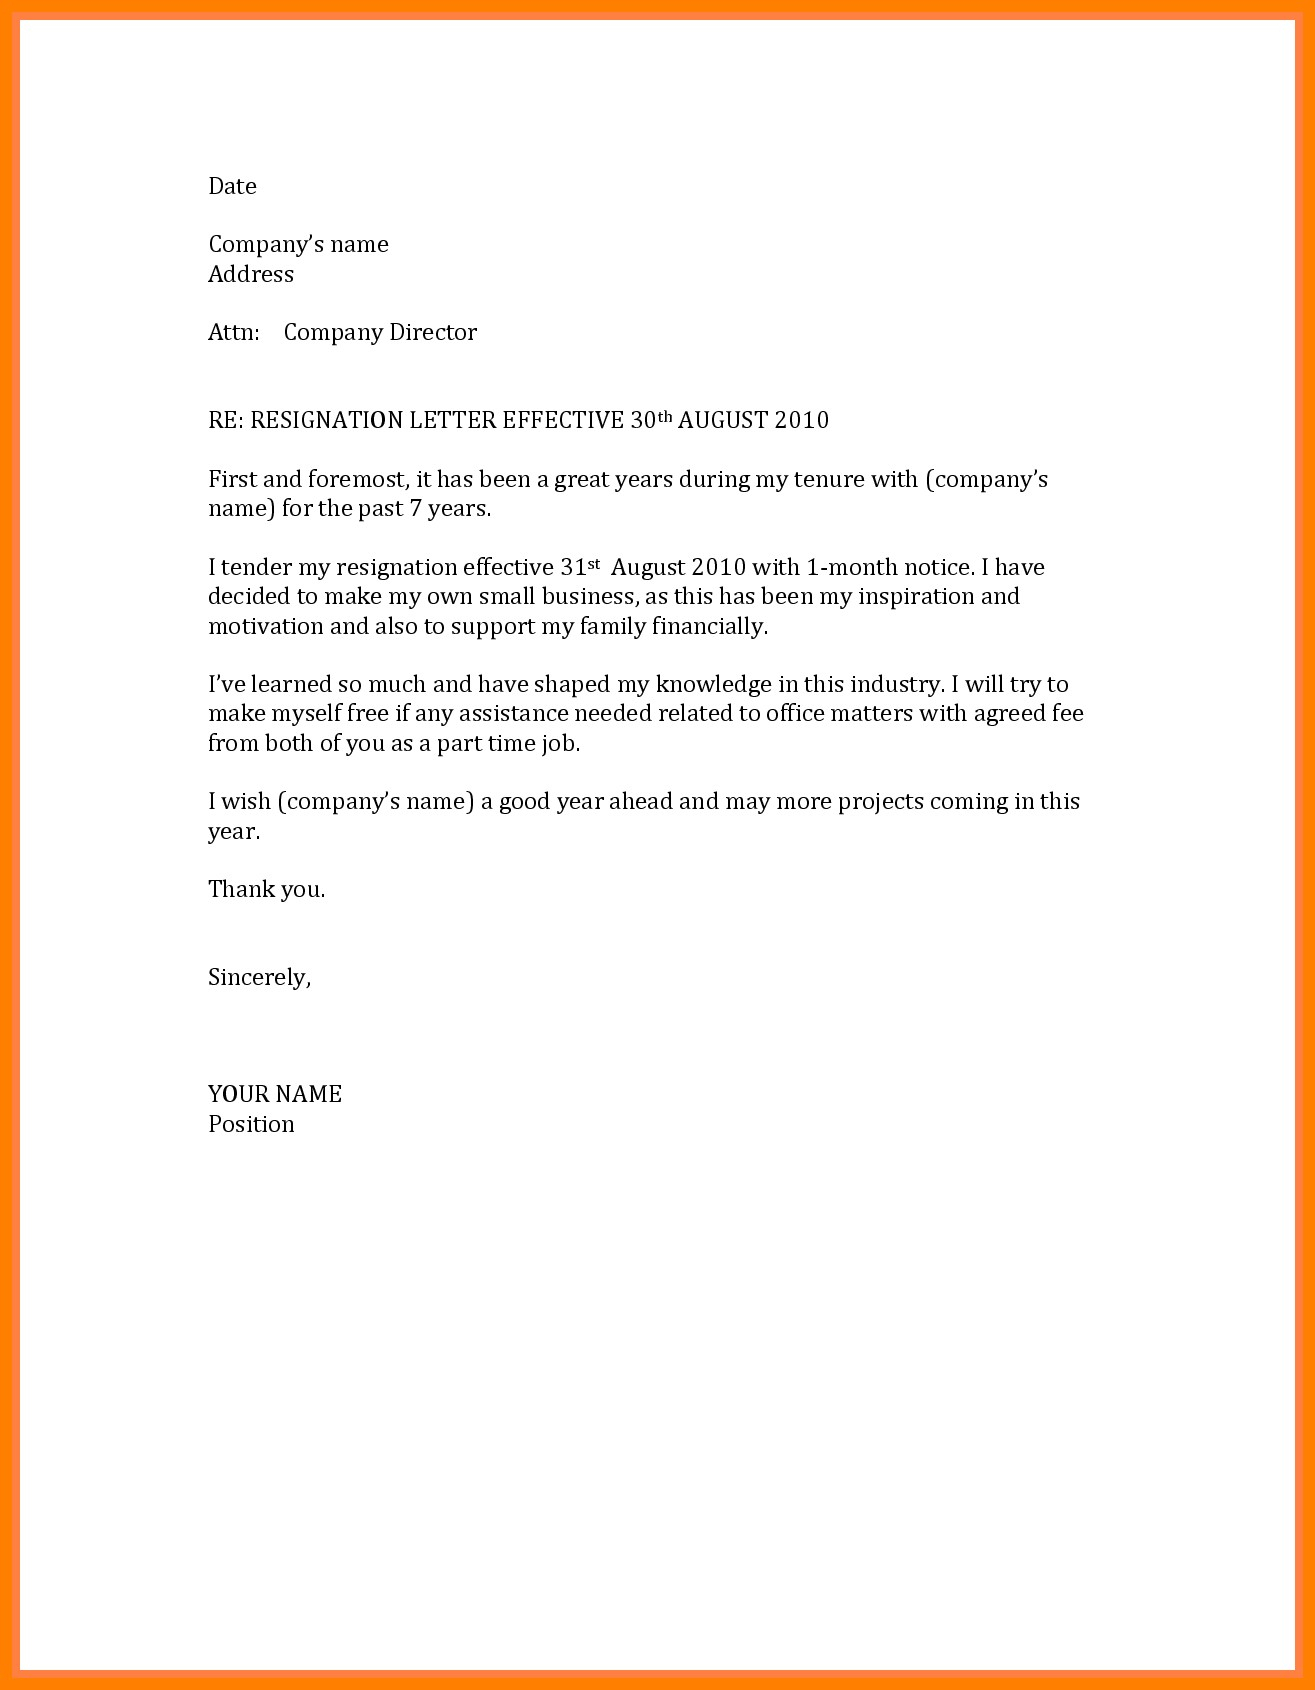 Sample Resignation Letter Template - Resignation Letter New Job Opportunity Fresh Sample Job Resignation